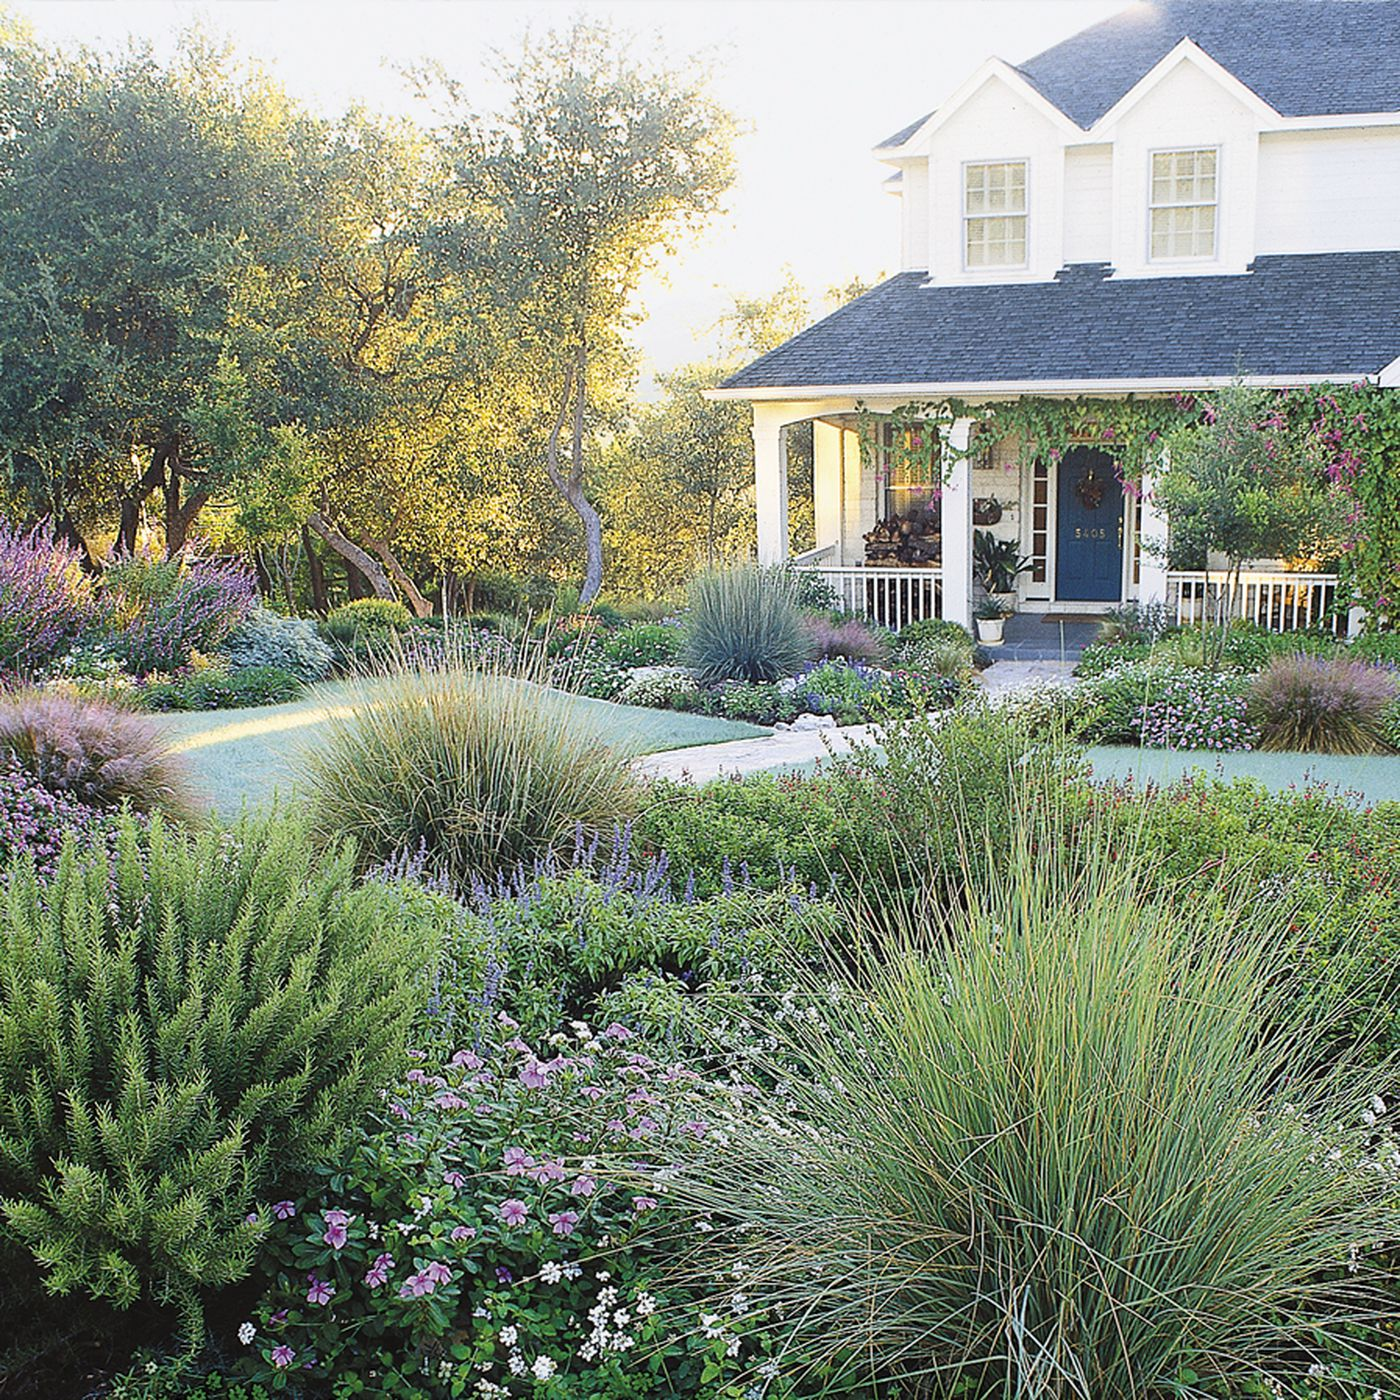 Yards Without Grass: Design Ideas For Your Landscape - This Old House